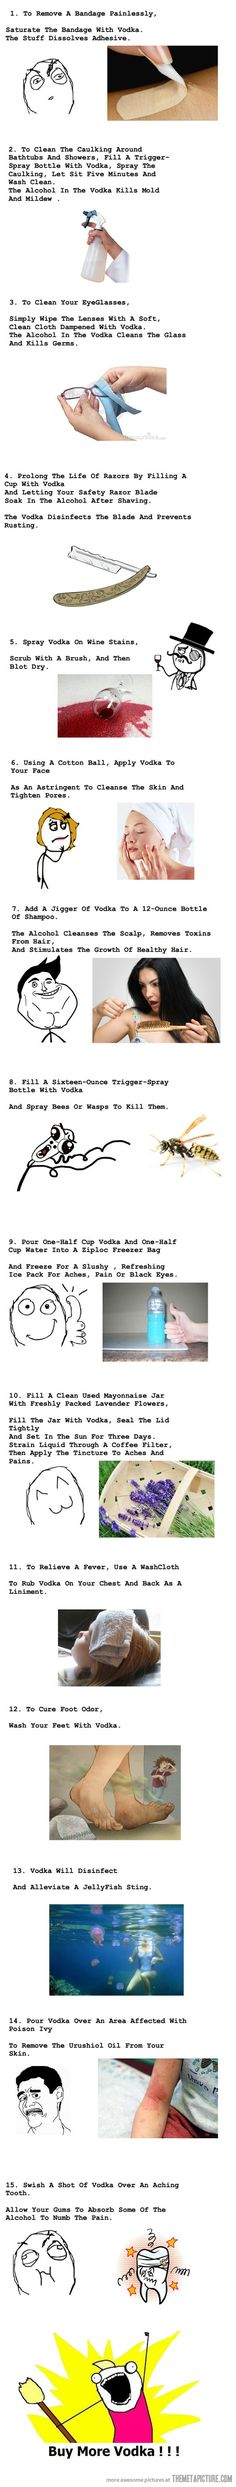 Top 15 Weird Uses for Vodka. OMG this Is amazing information lol